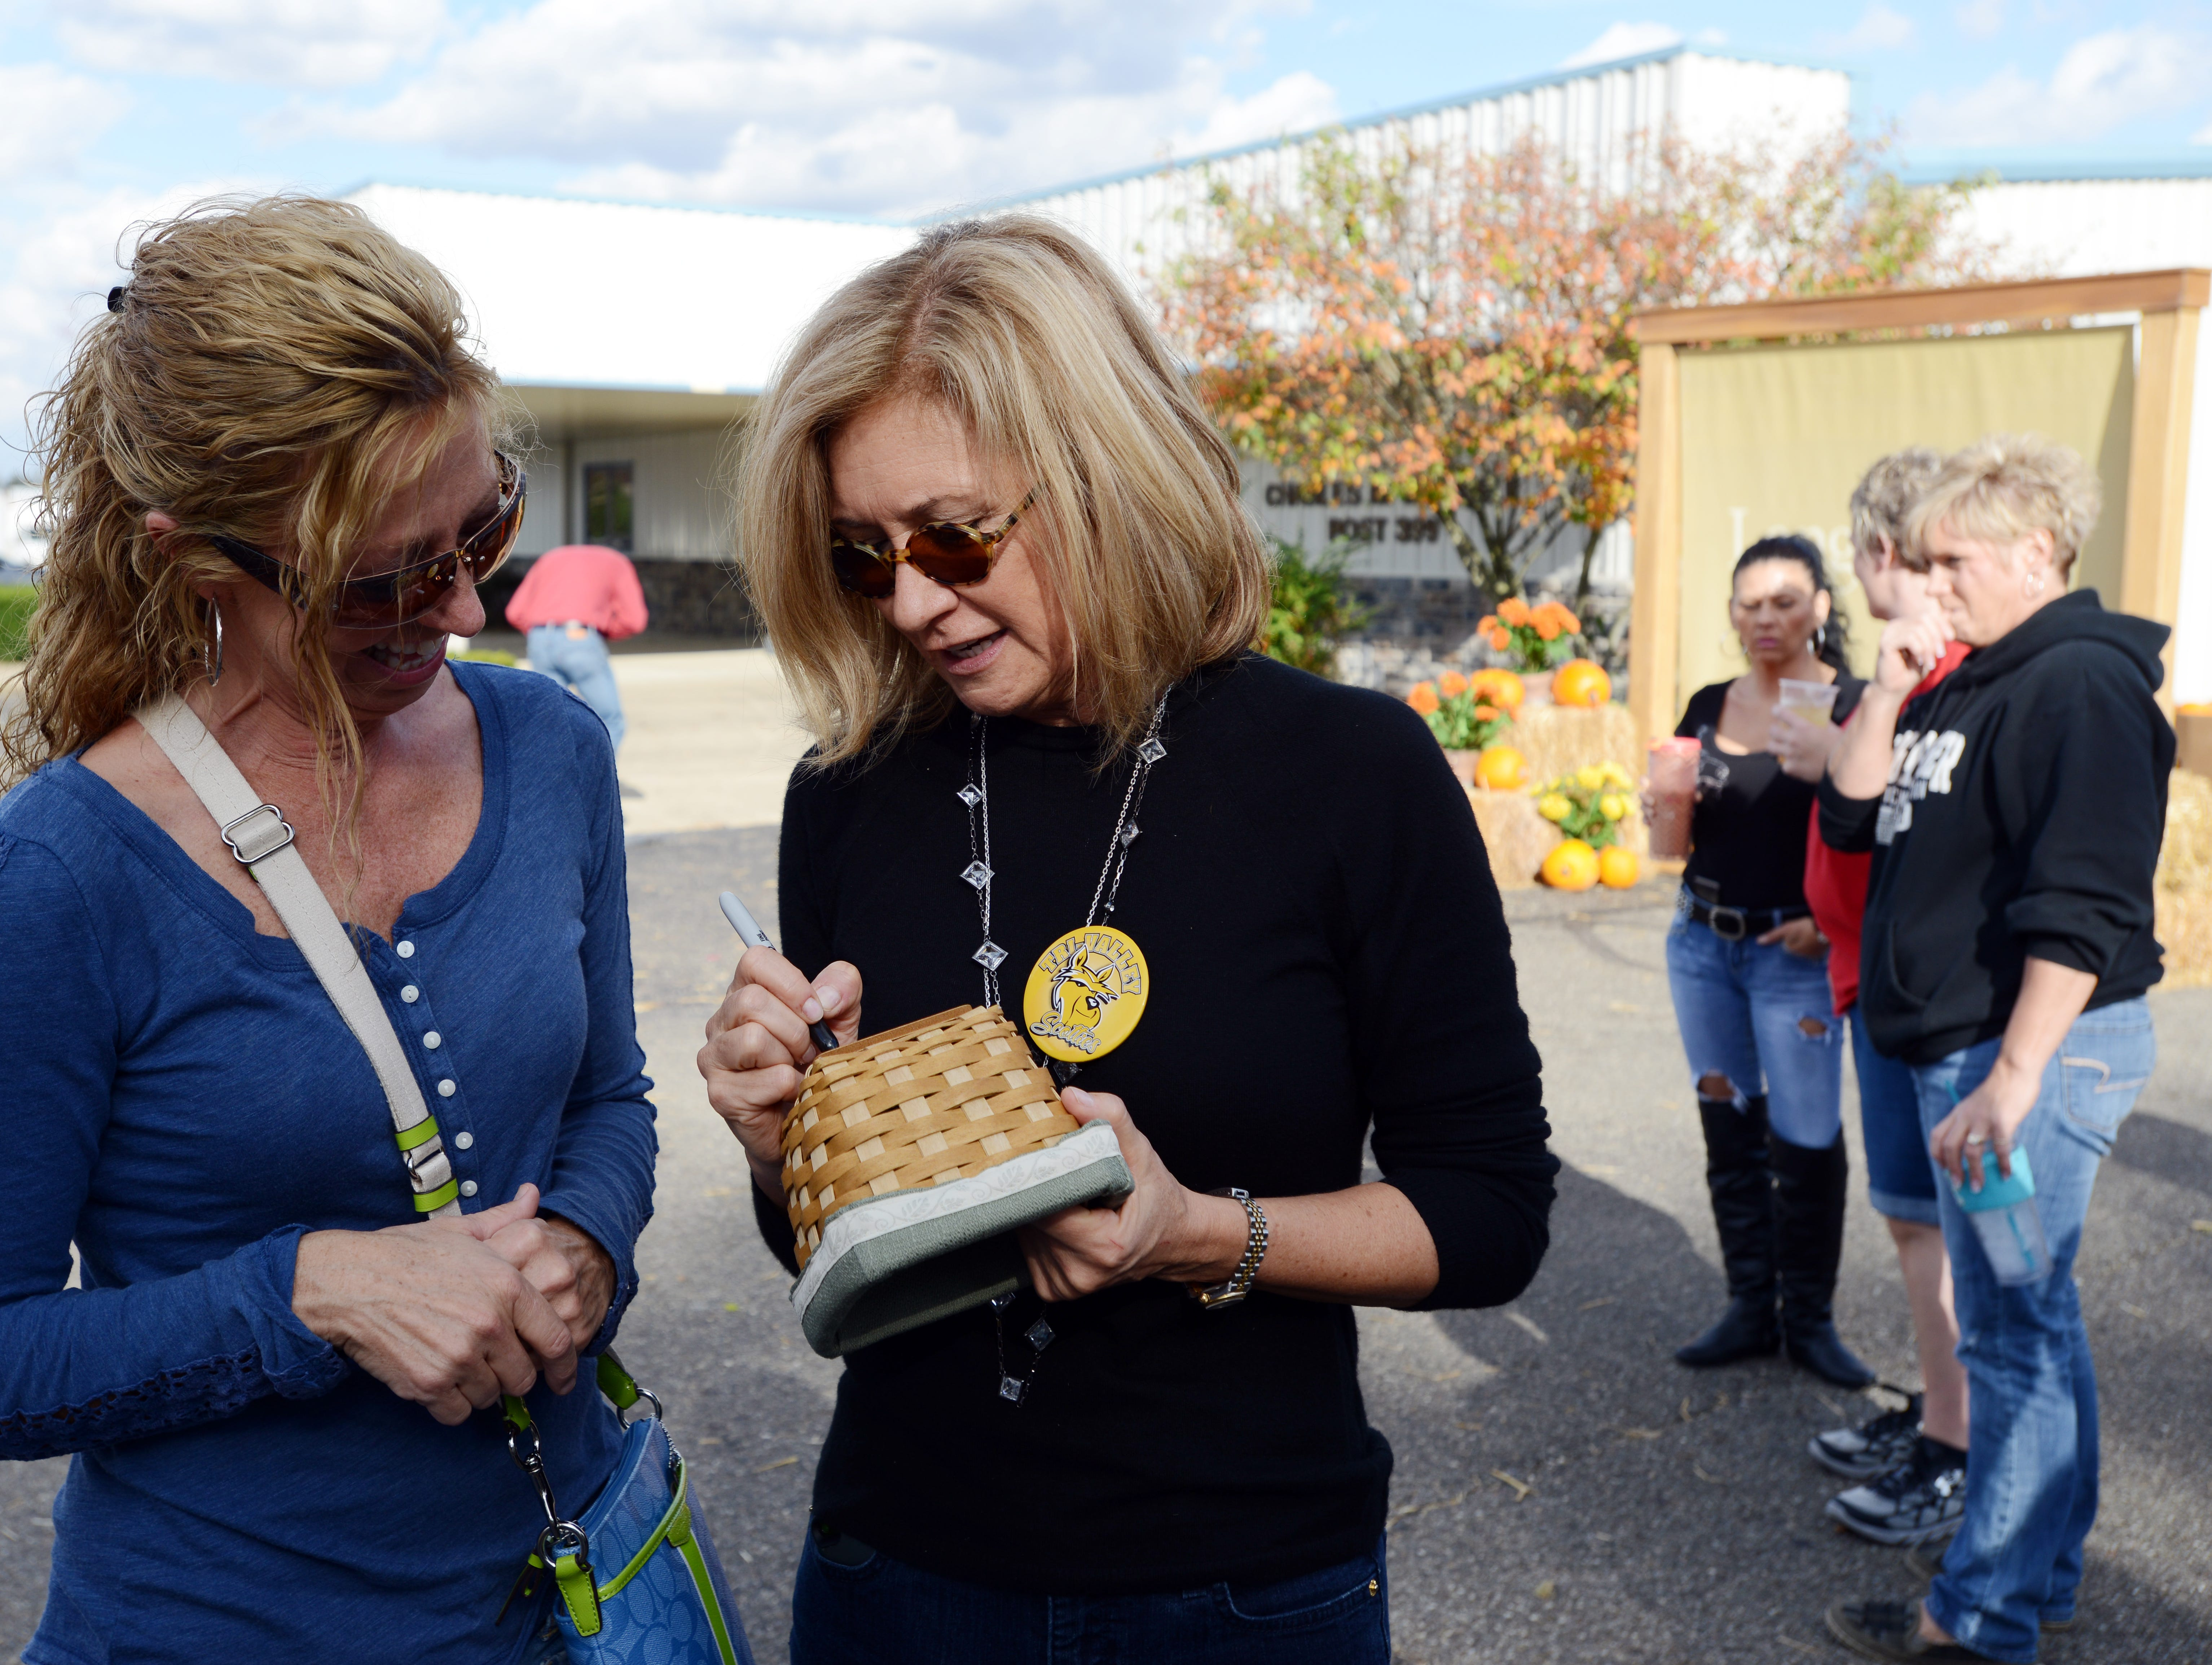 Tammy Longaberger signs a basket for a long-time associate during an event in Dresden.